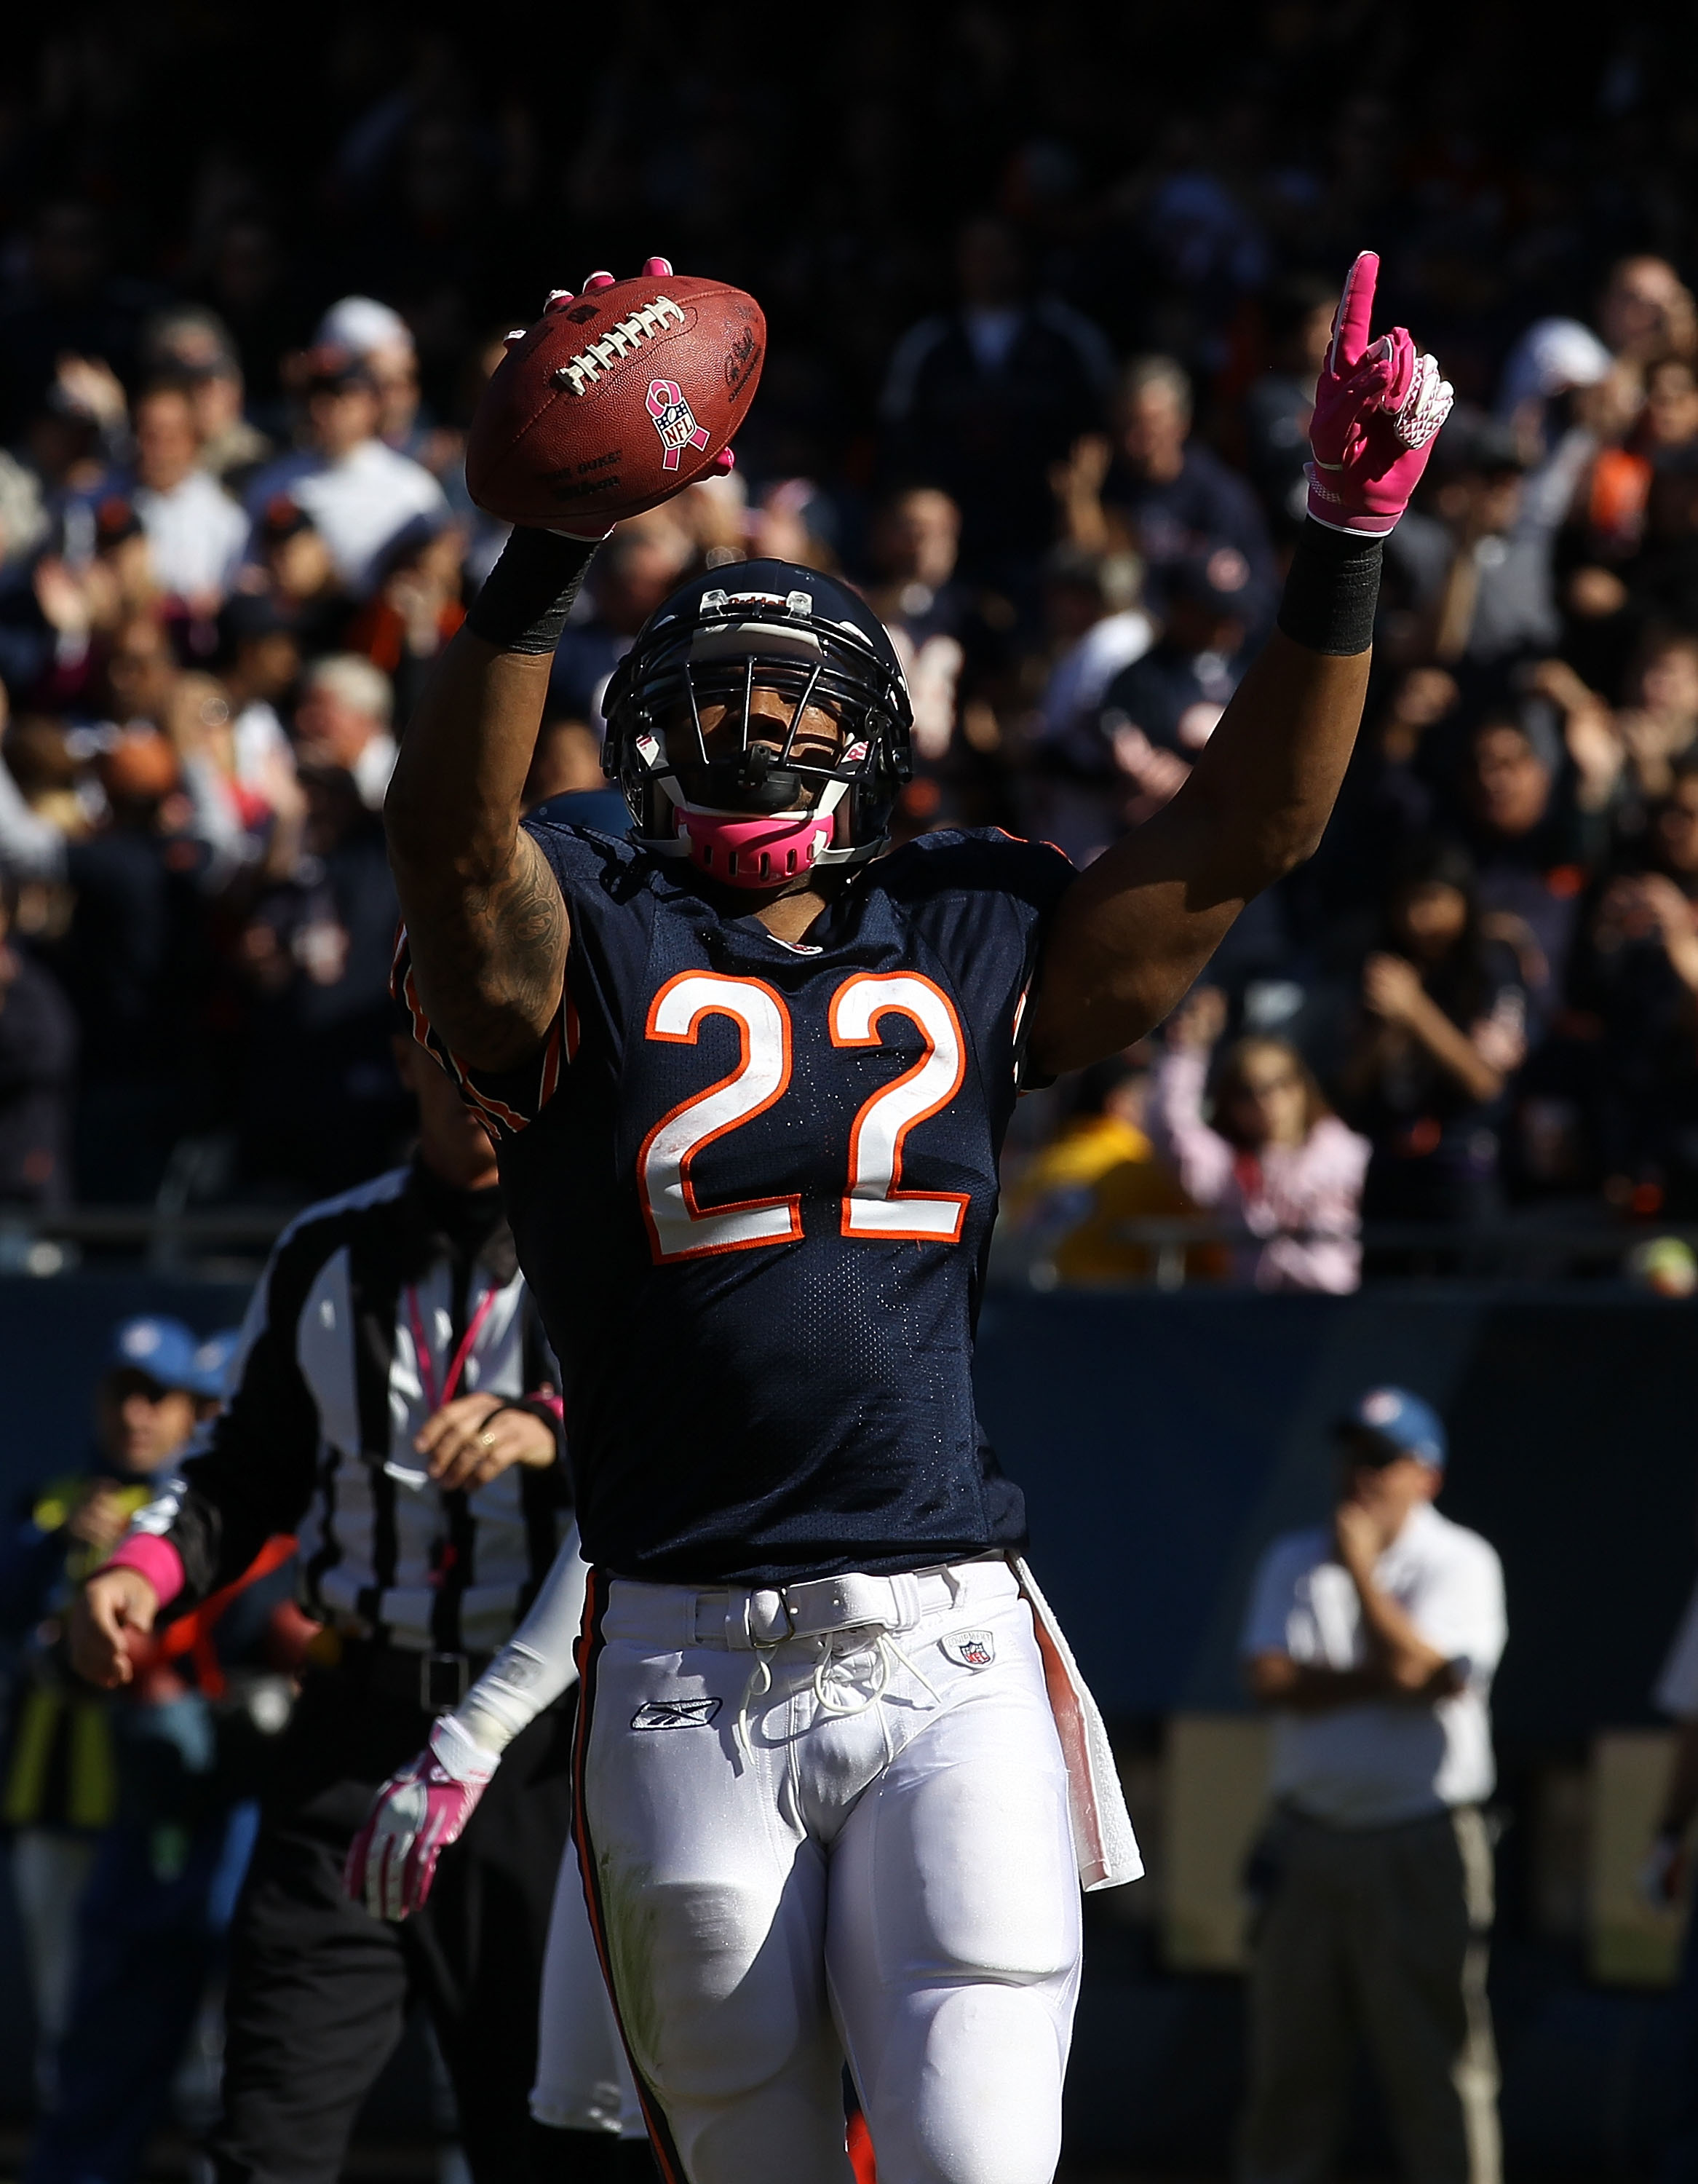 adb45fd9e19 CHICAGO - OCTOBER 17: Matt Forte #22 of the Chicago Bears celebrates after  scoring